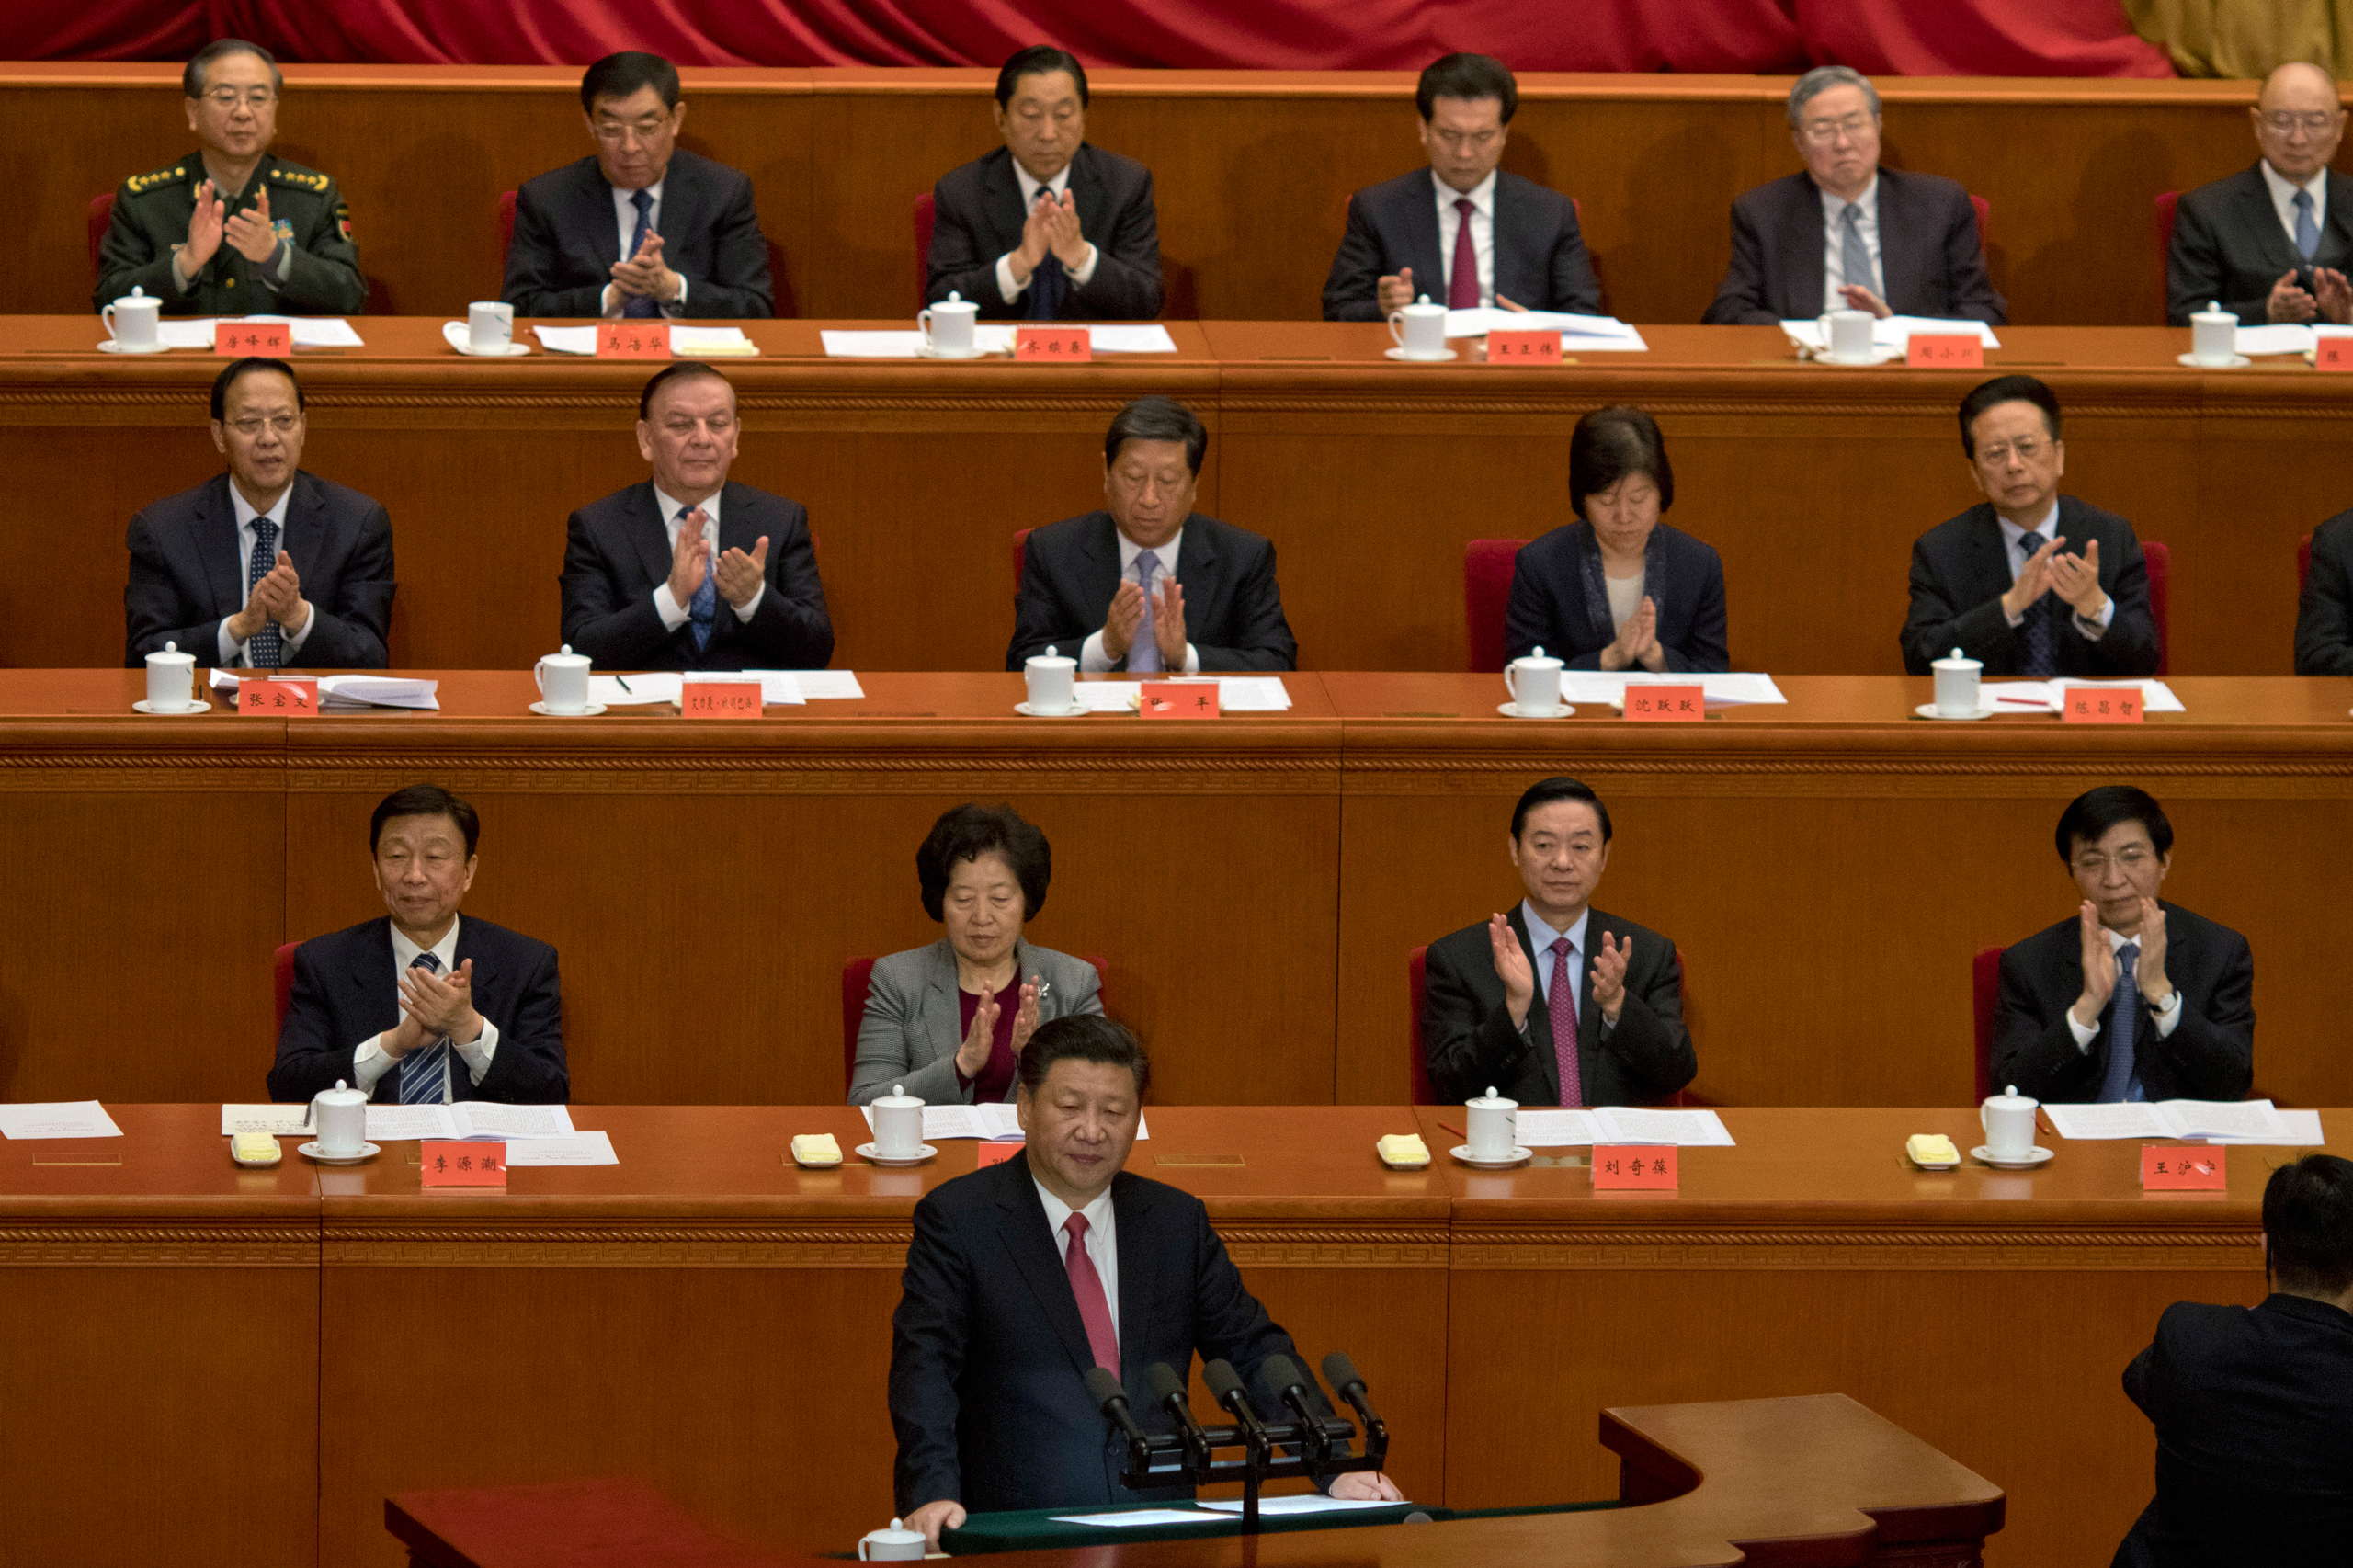 Chinese President Xi Jinping speaks at the commemorative meeting to mark the 150th anniversary of the birth of Sun Yat-sen, founding father of the Republic of China and founder of the Chinese National Party (KMT) at the Great Hall of the People in Beijing on Nov. 11, 2016.